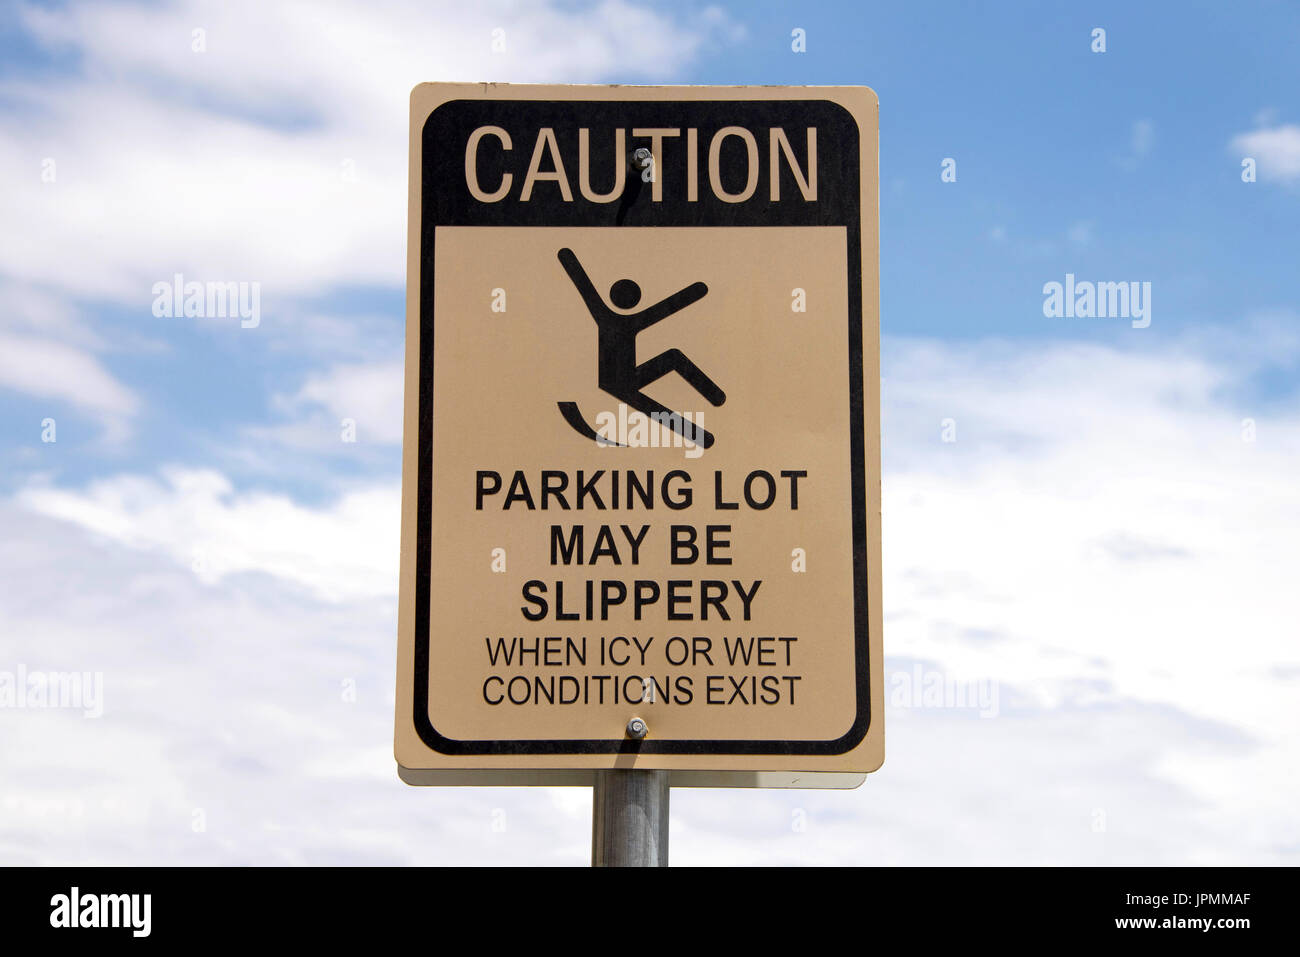 Caution, Slippery when wet sign in a parking lot. Warning patrons. Blue sky with fluffy white clouds in background - Stock Image